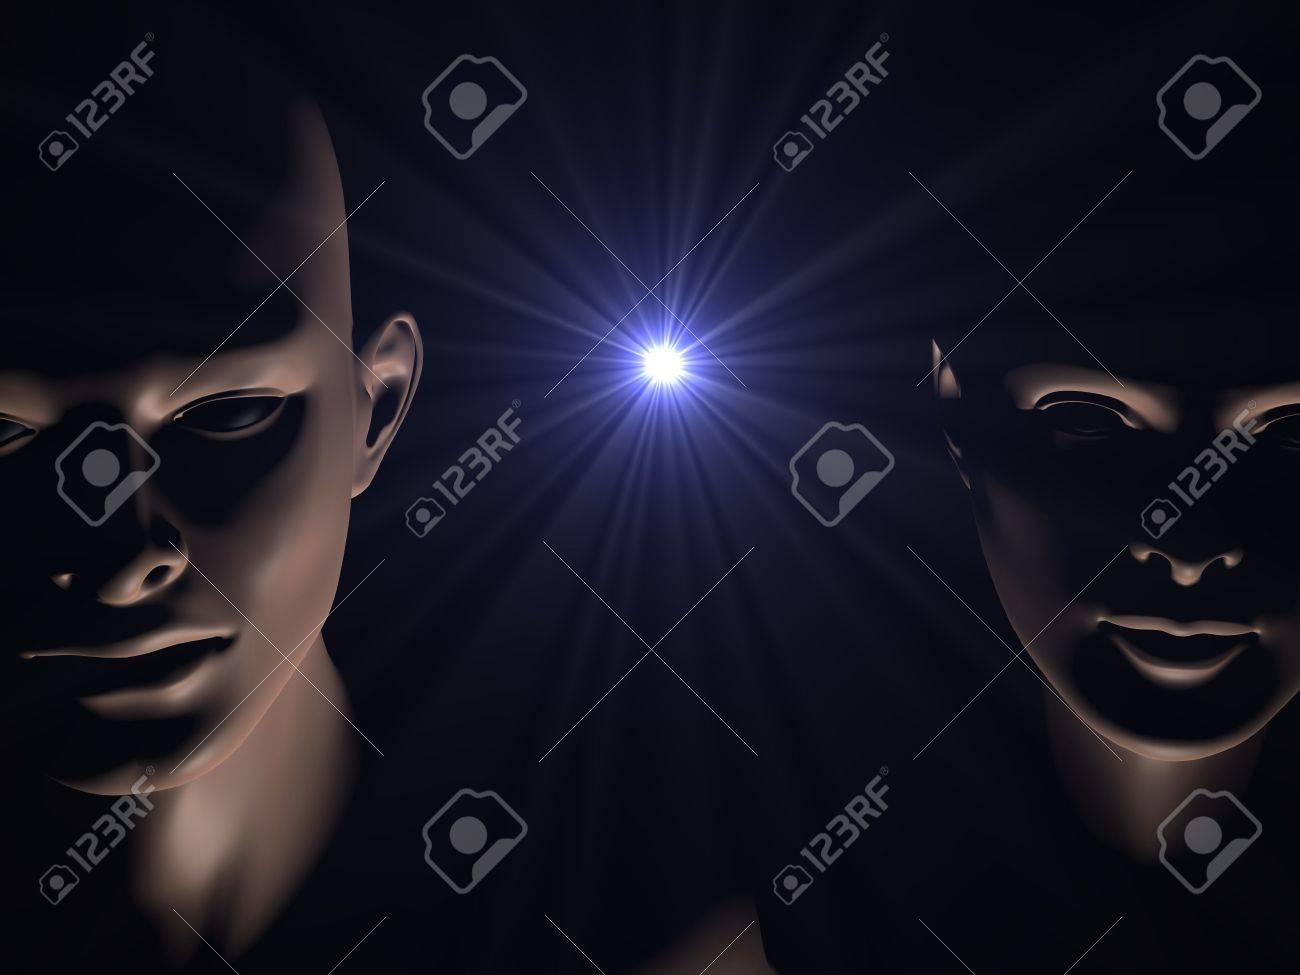 human faces and star burst representing birth of life in space Stock Photo - 7630681